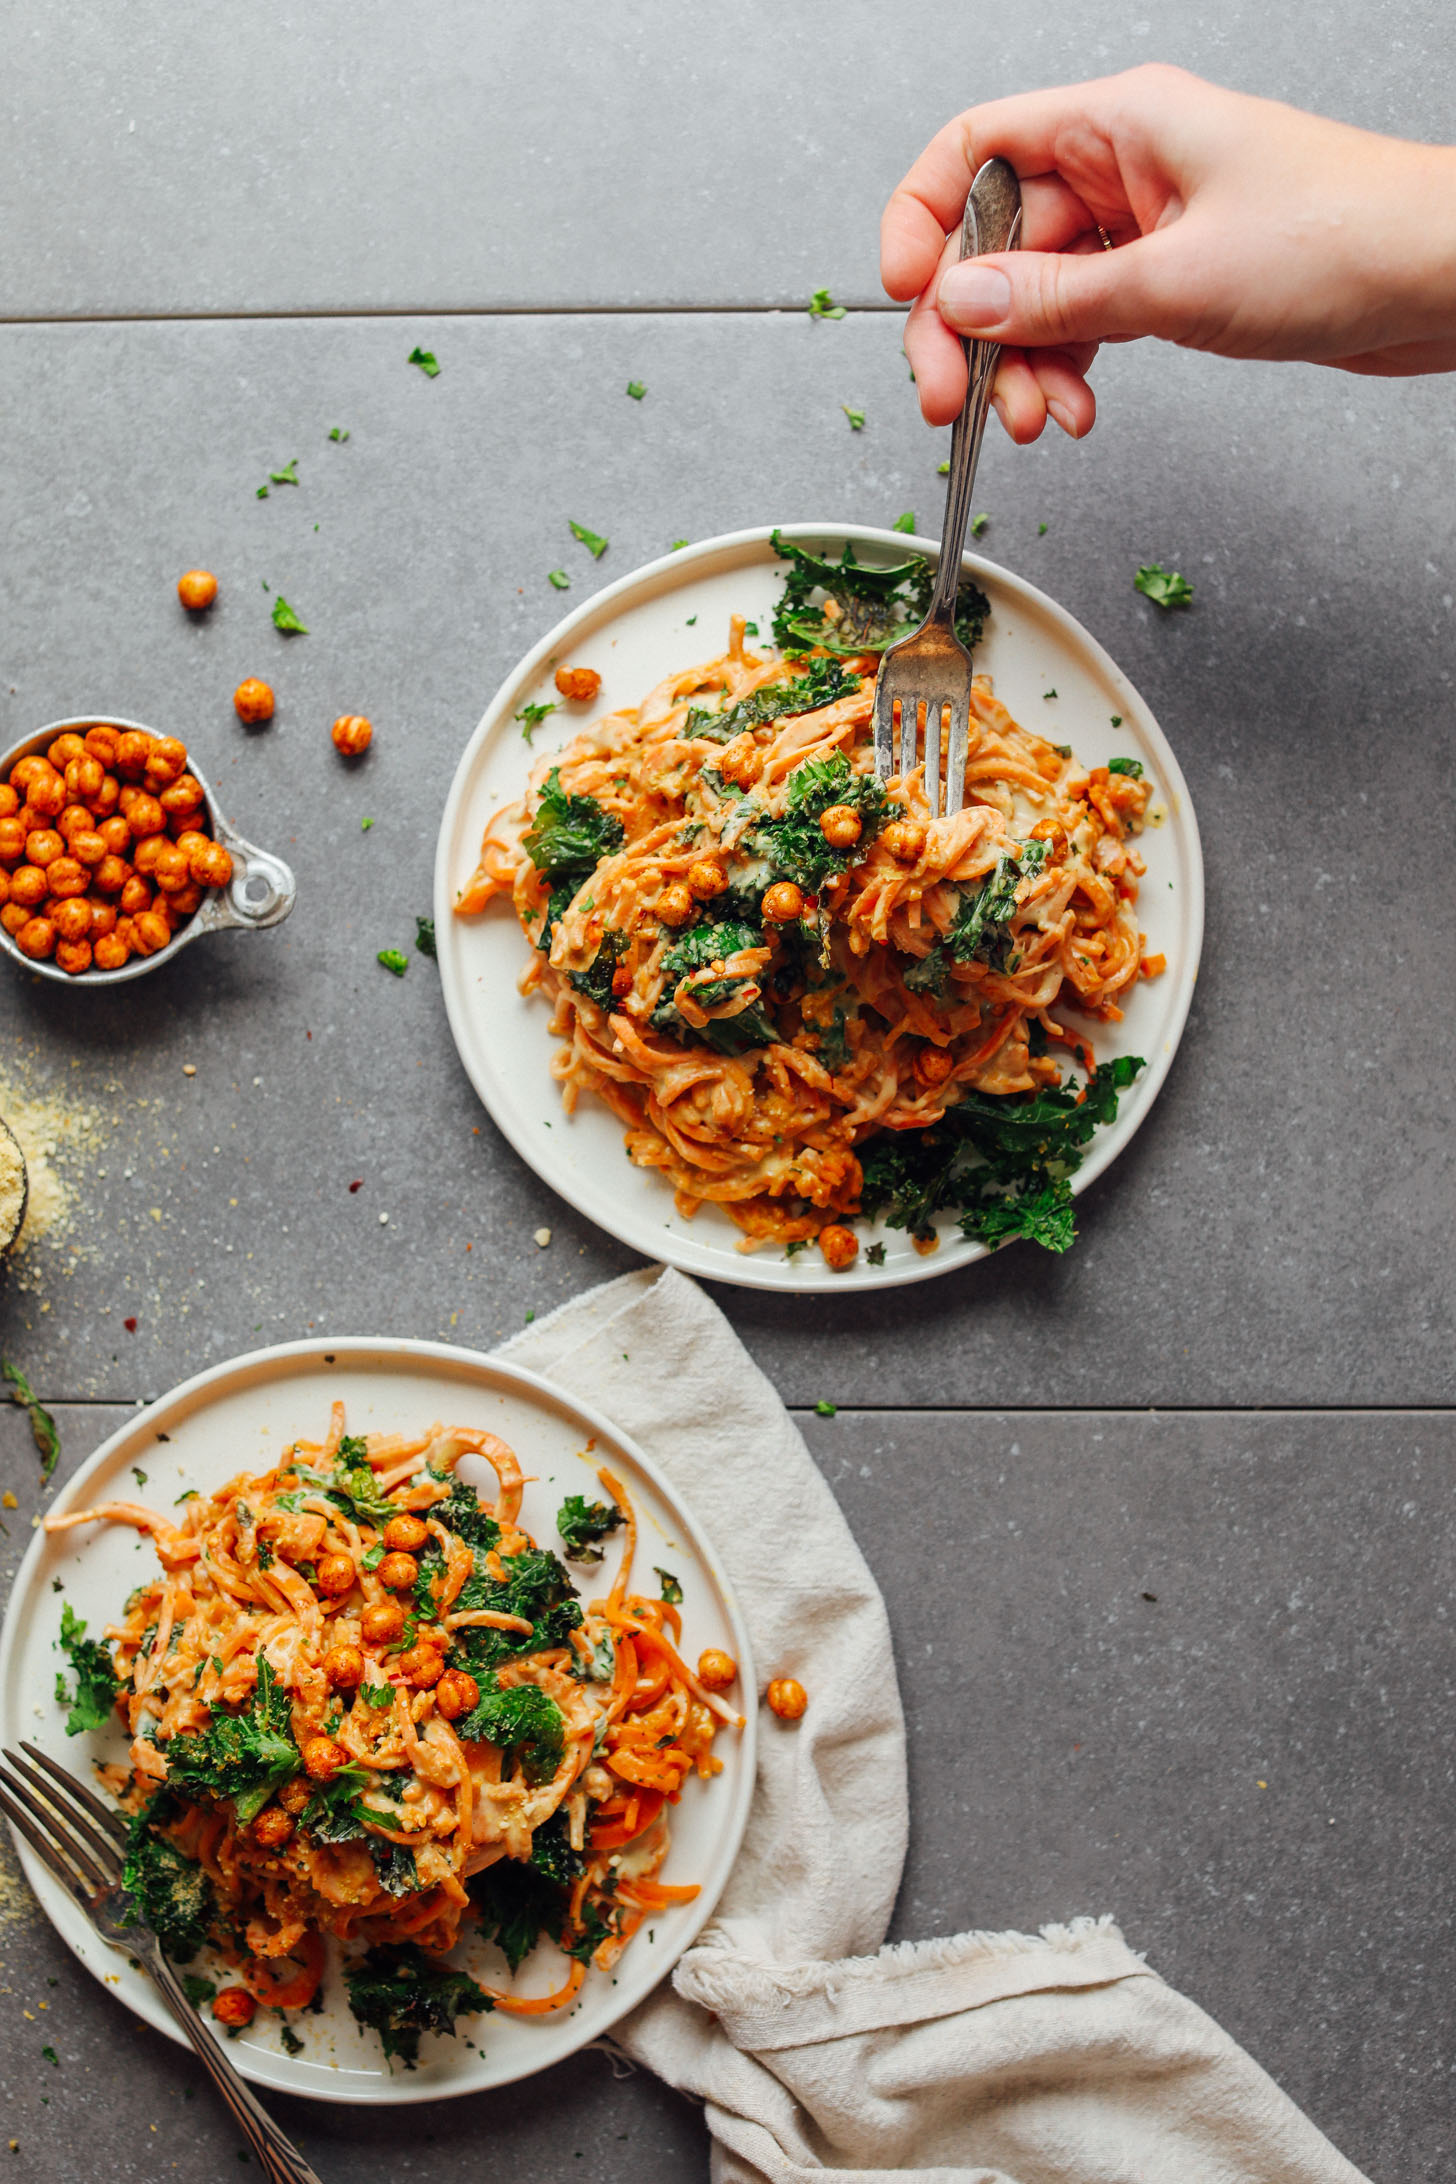 Two dinner plates with large servings of Garlicky Sweet Potato Pasta with Crispy Kale